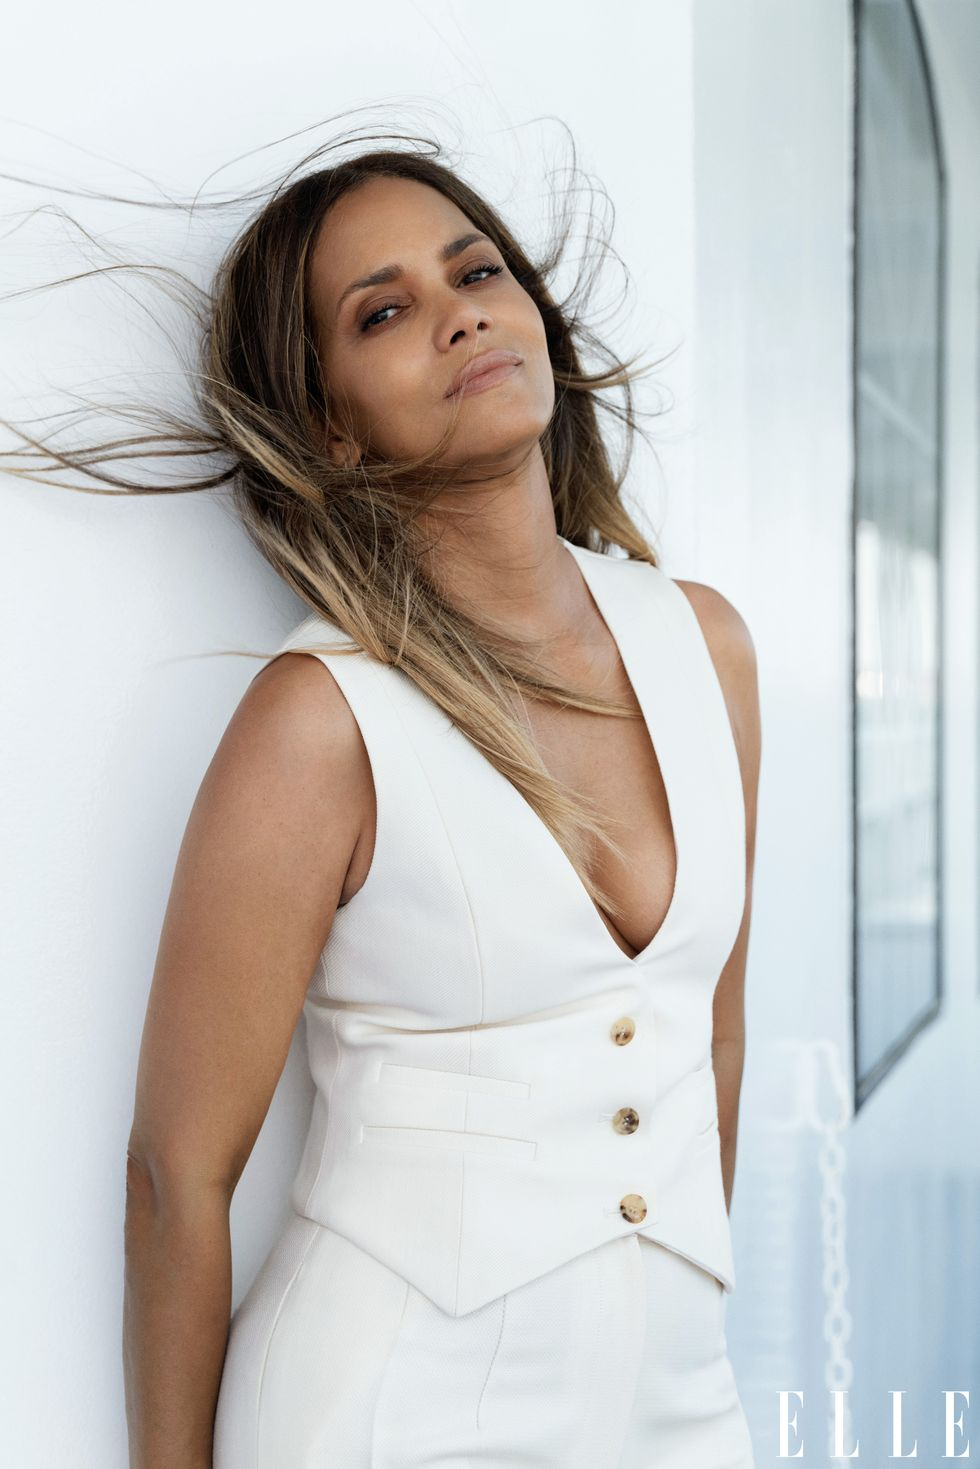 Halle Berry Takes a New Direction